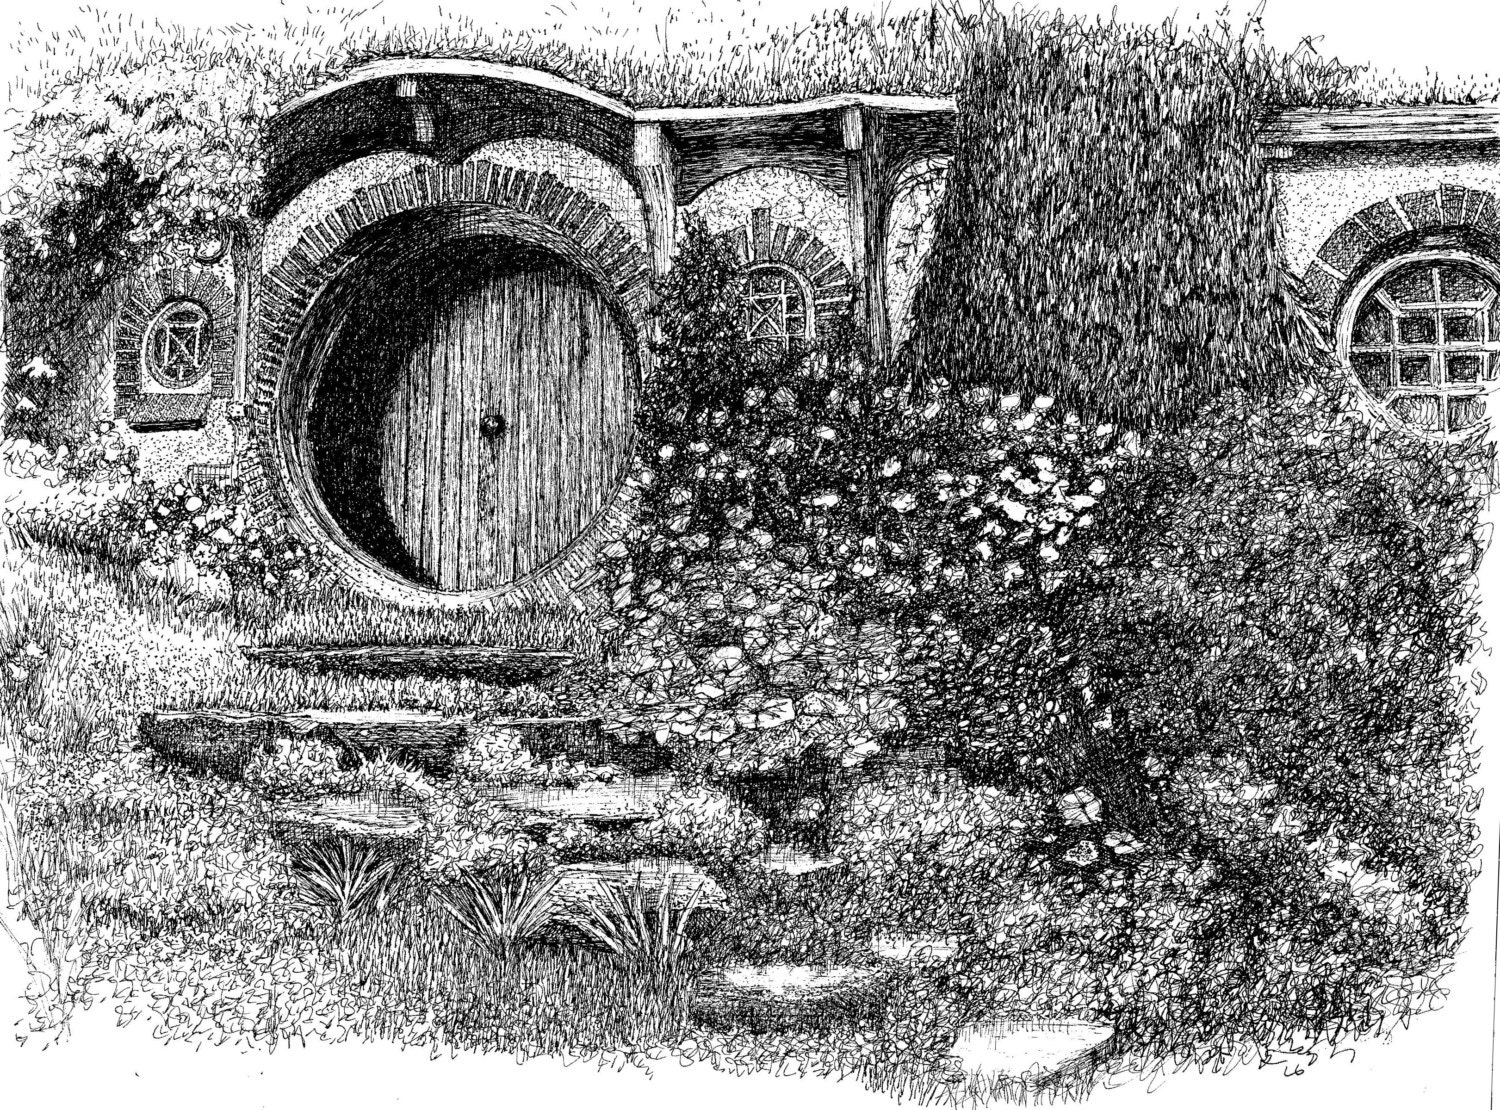 Bag End Pen And Ink Drawing An 8X10 Print By Skadoodled On